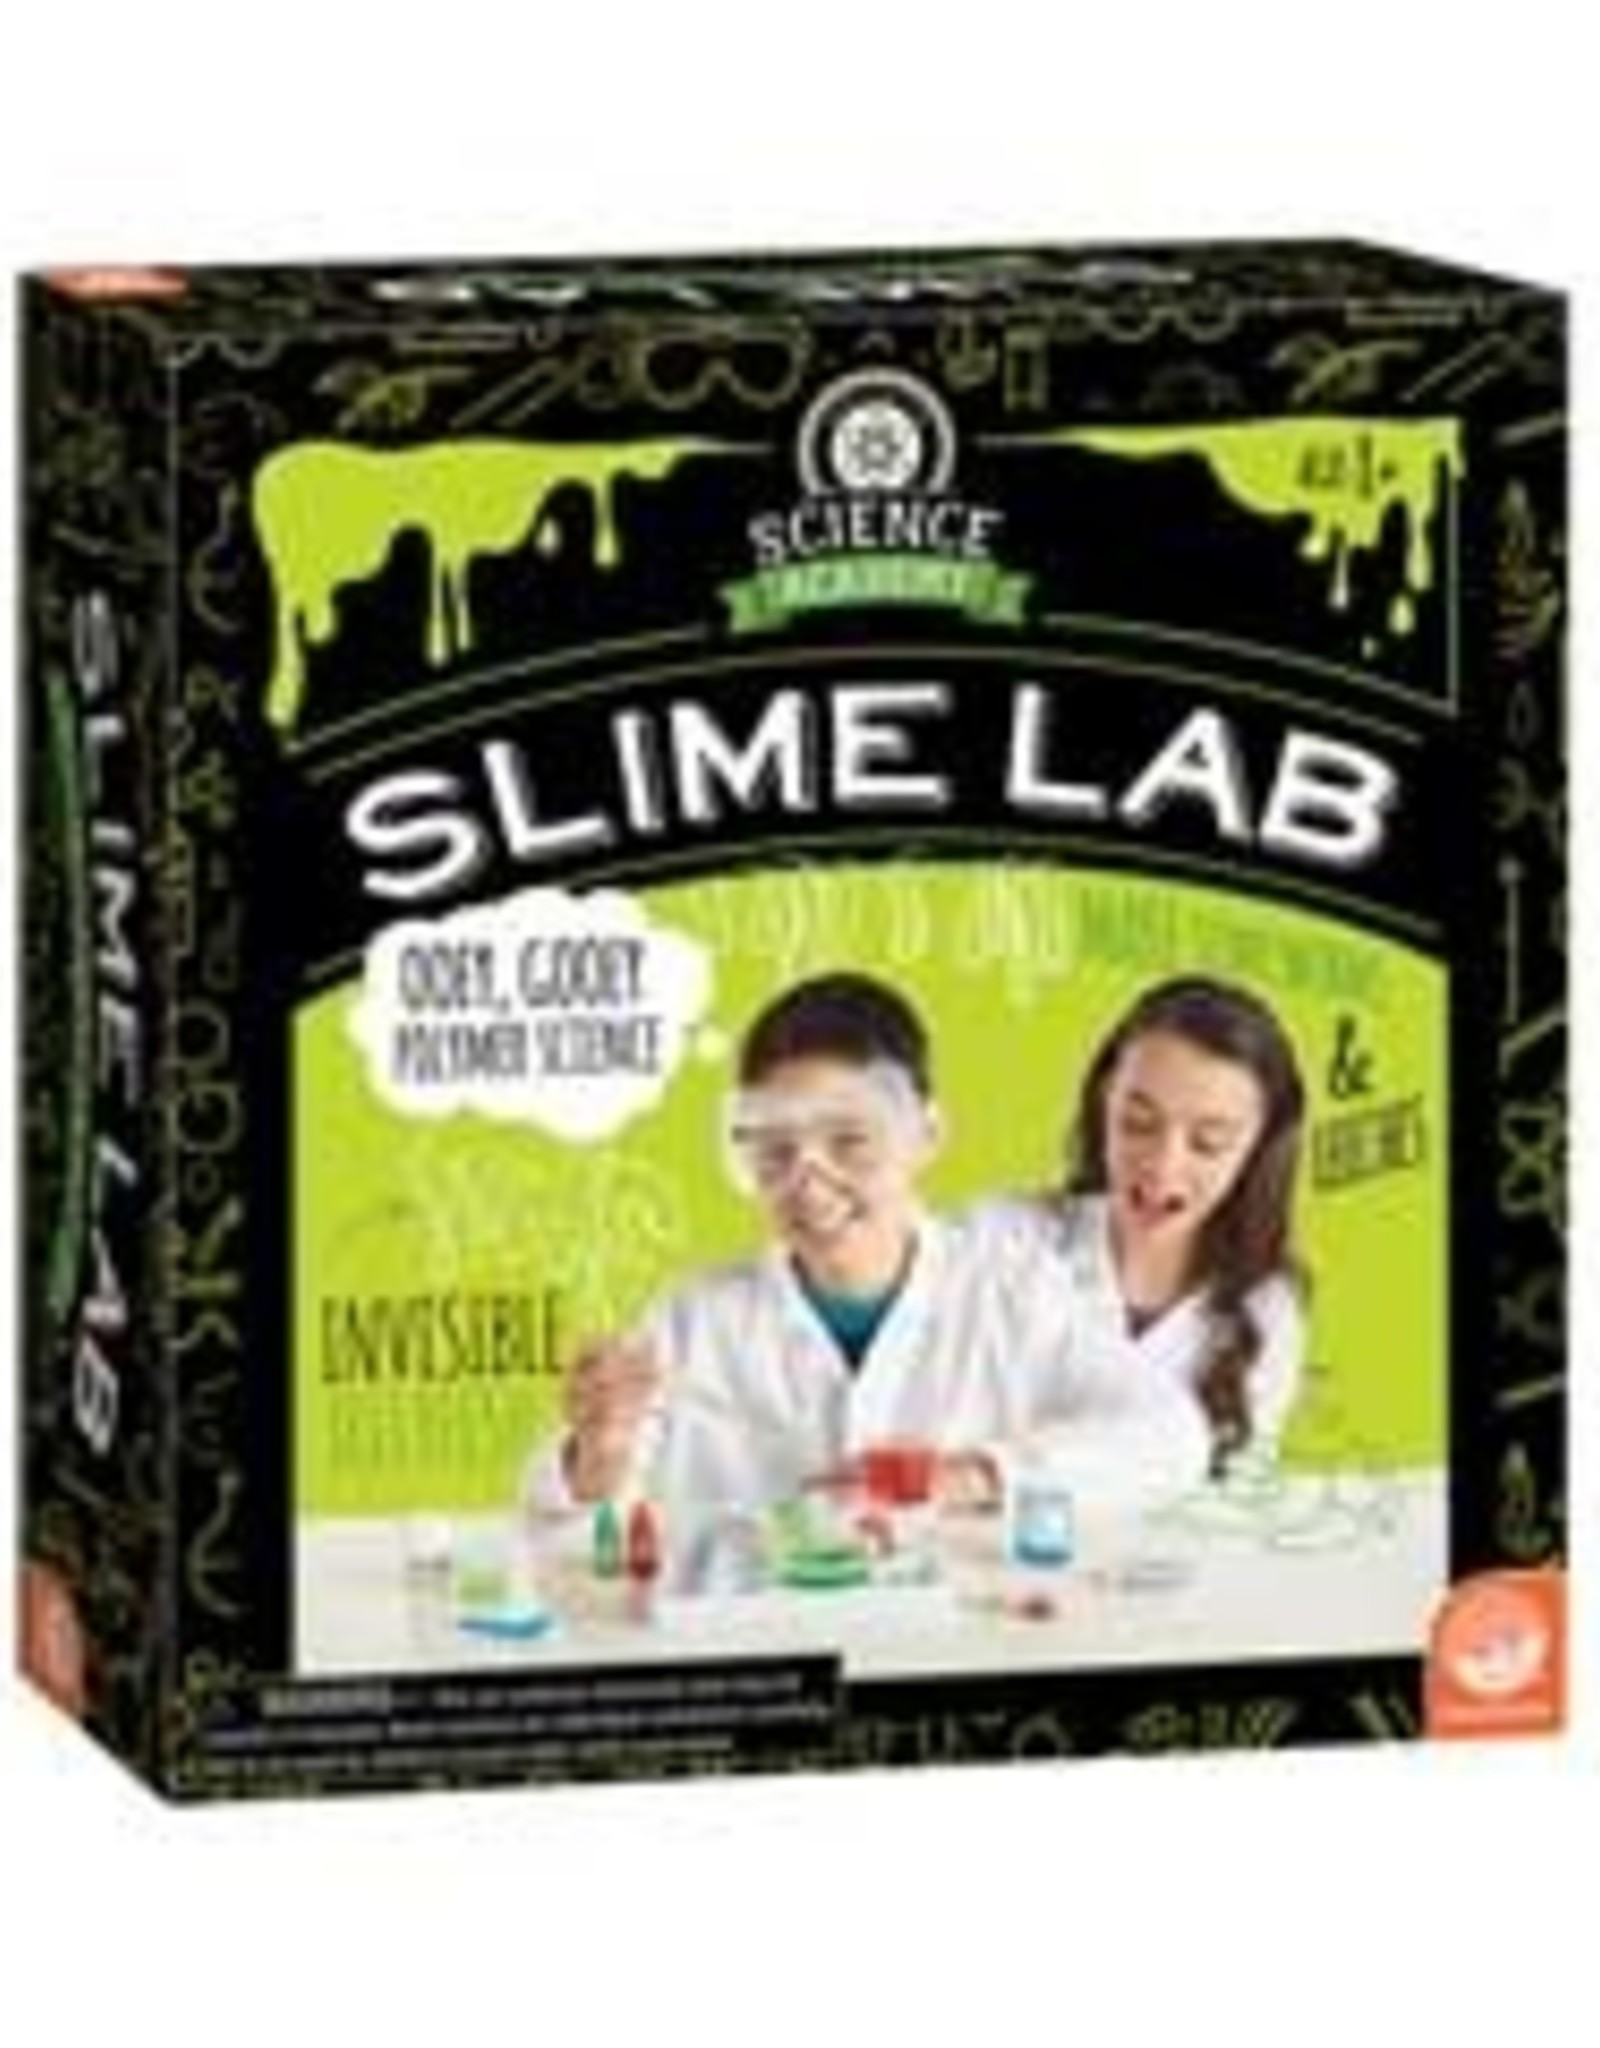 Science Academy Slime Lab Science